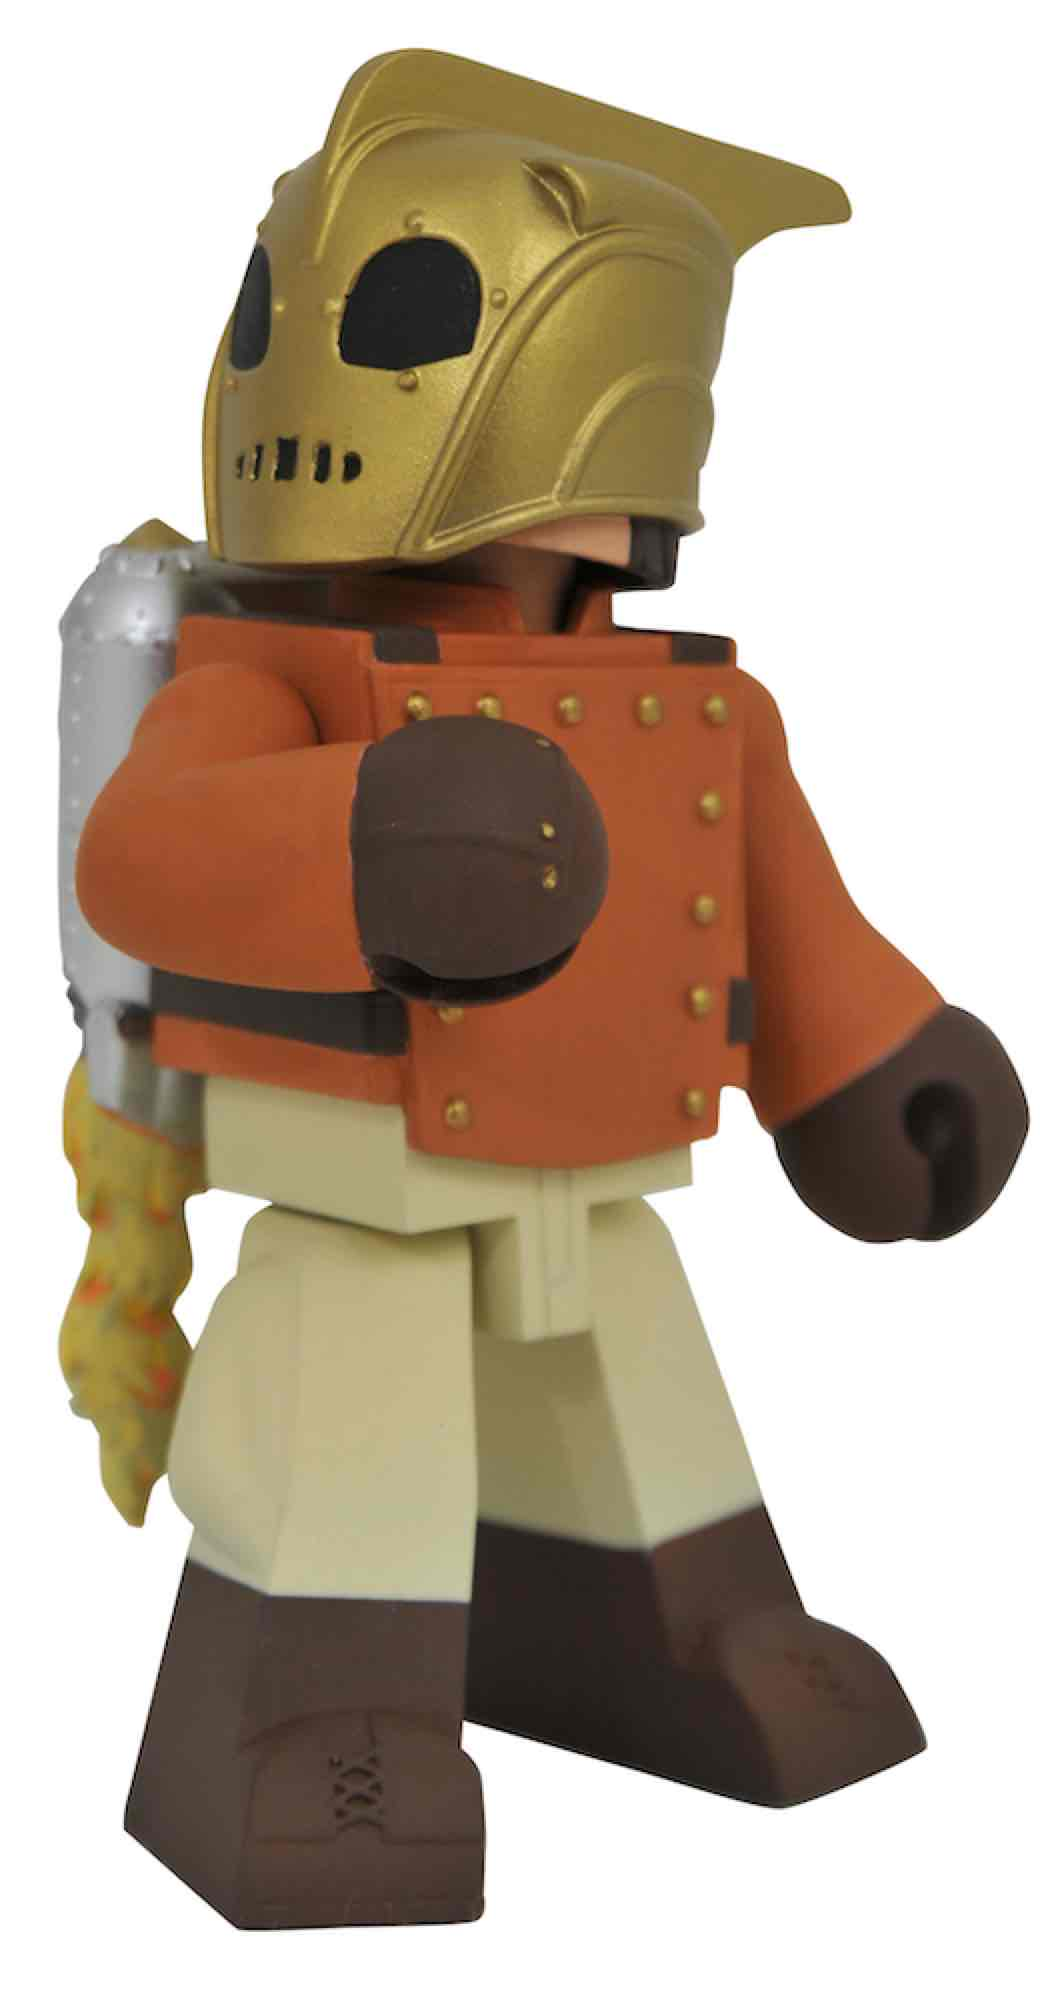 ROCKETEER FIGURA 10 CM VINIMATES VINYL FIGURE THE ROCKETEER